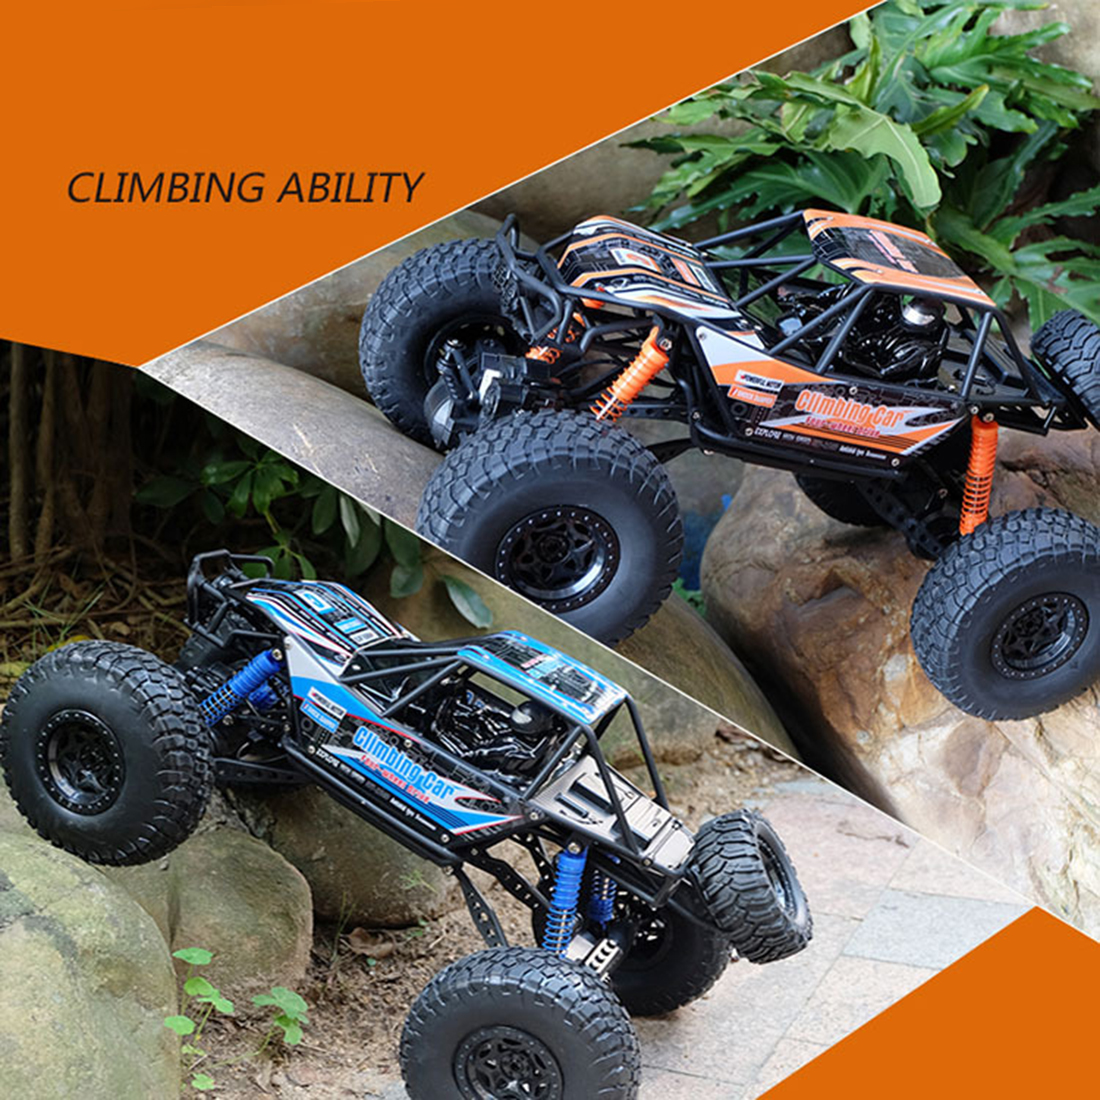 48cm 1:10 4WD 2.4G RC Monster Truck High Speed Racing Car Off Road Vehicle For Child School Play Education Birthday Gift Blue - 4